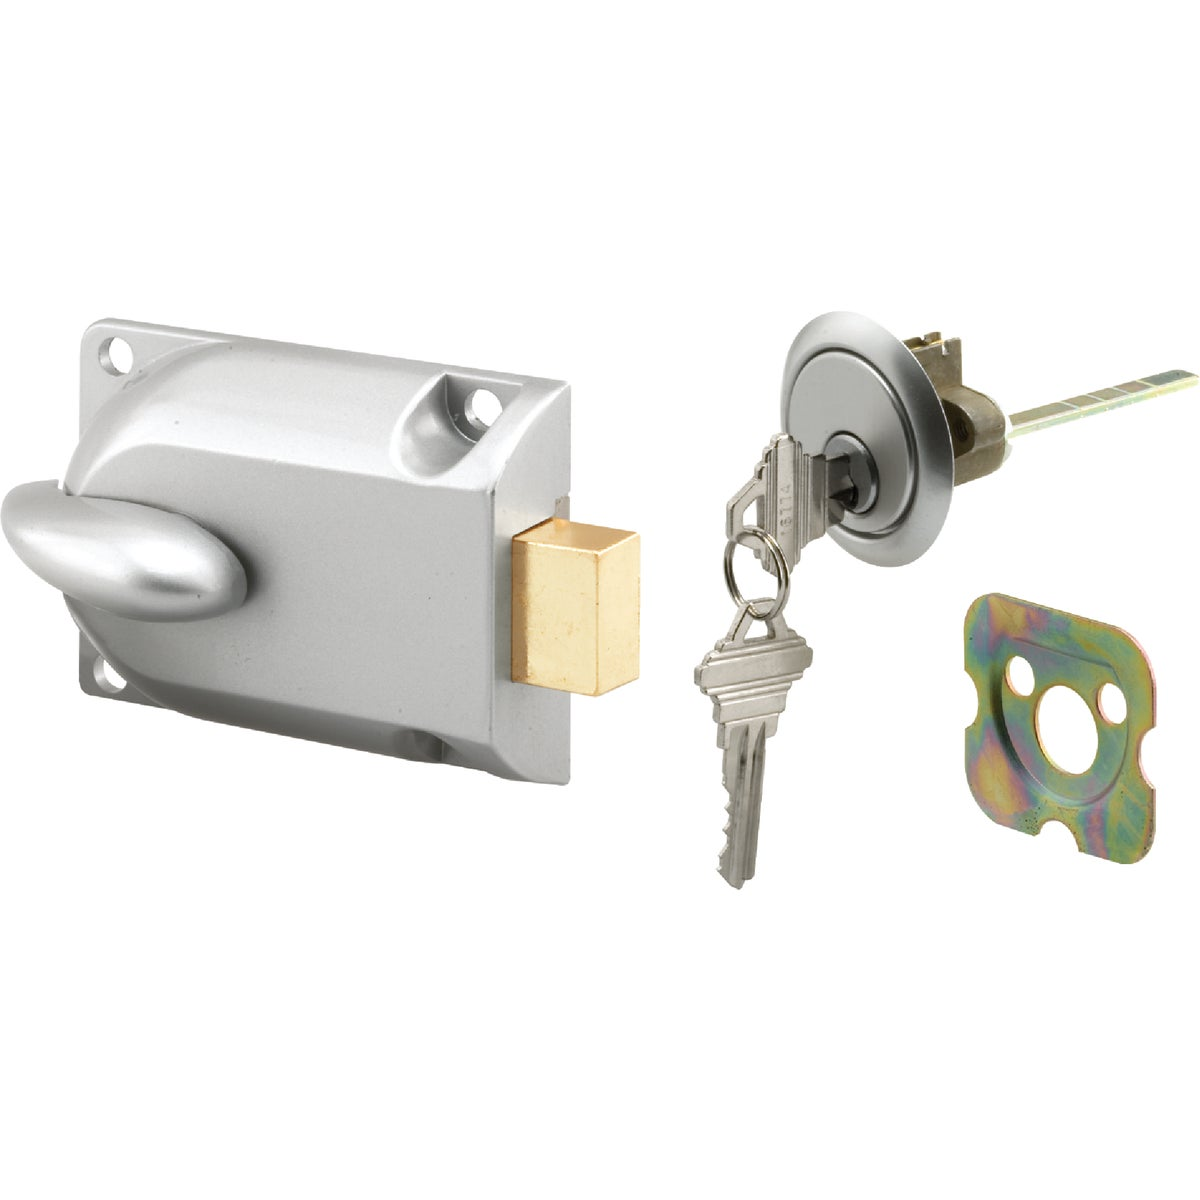 GARAGE DOOR LOCK - GD 52119 by Prime Line Products